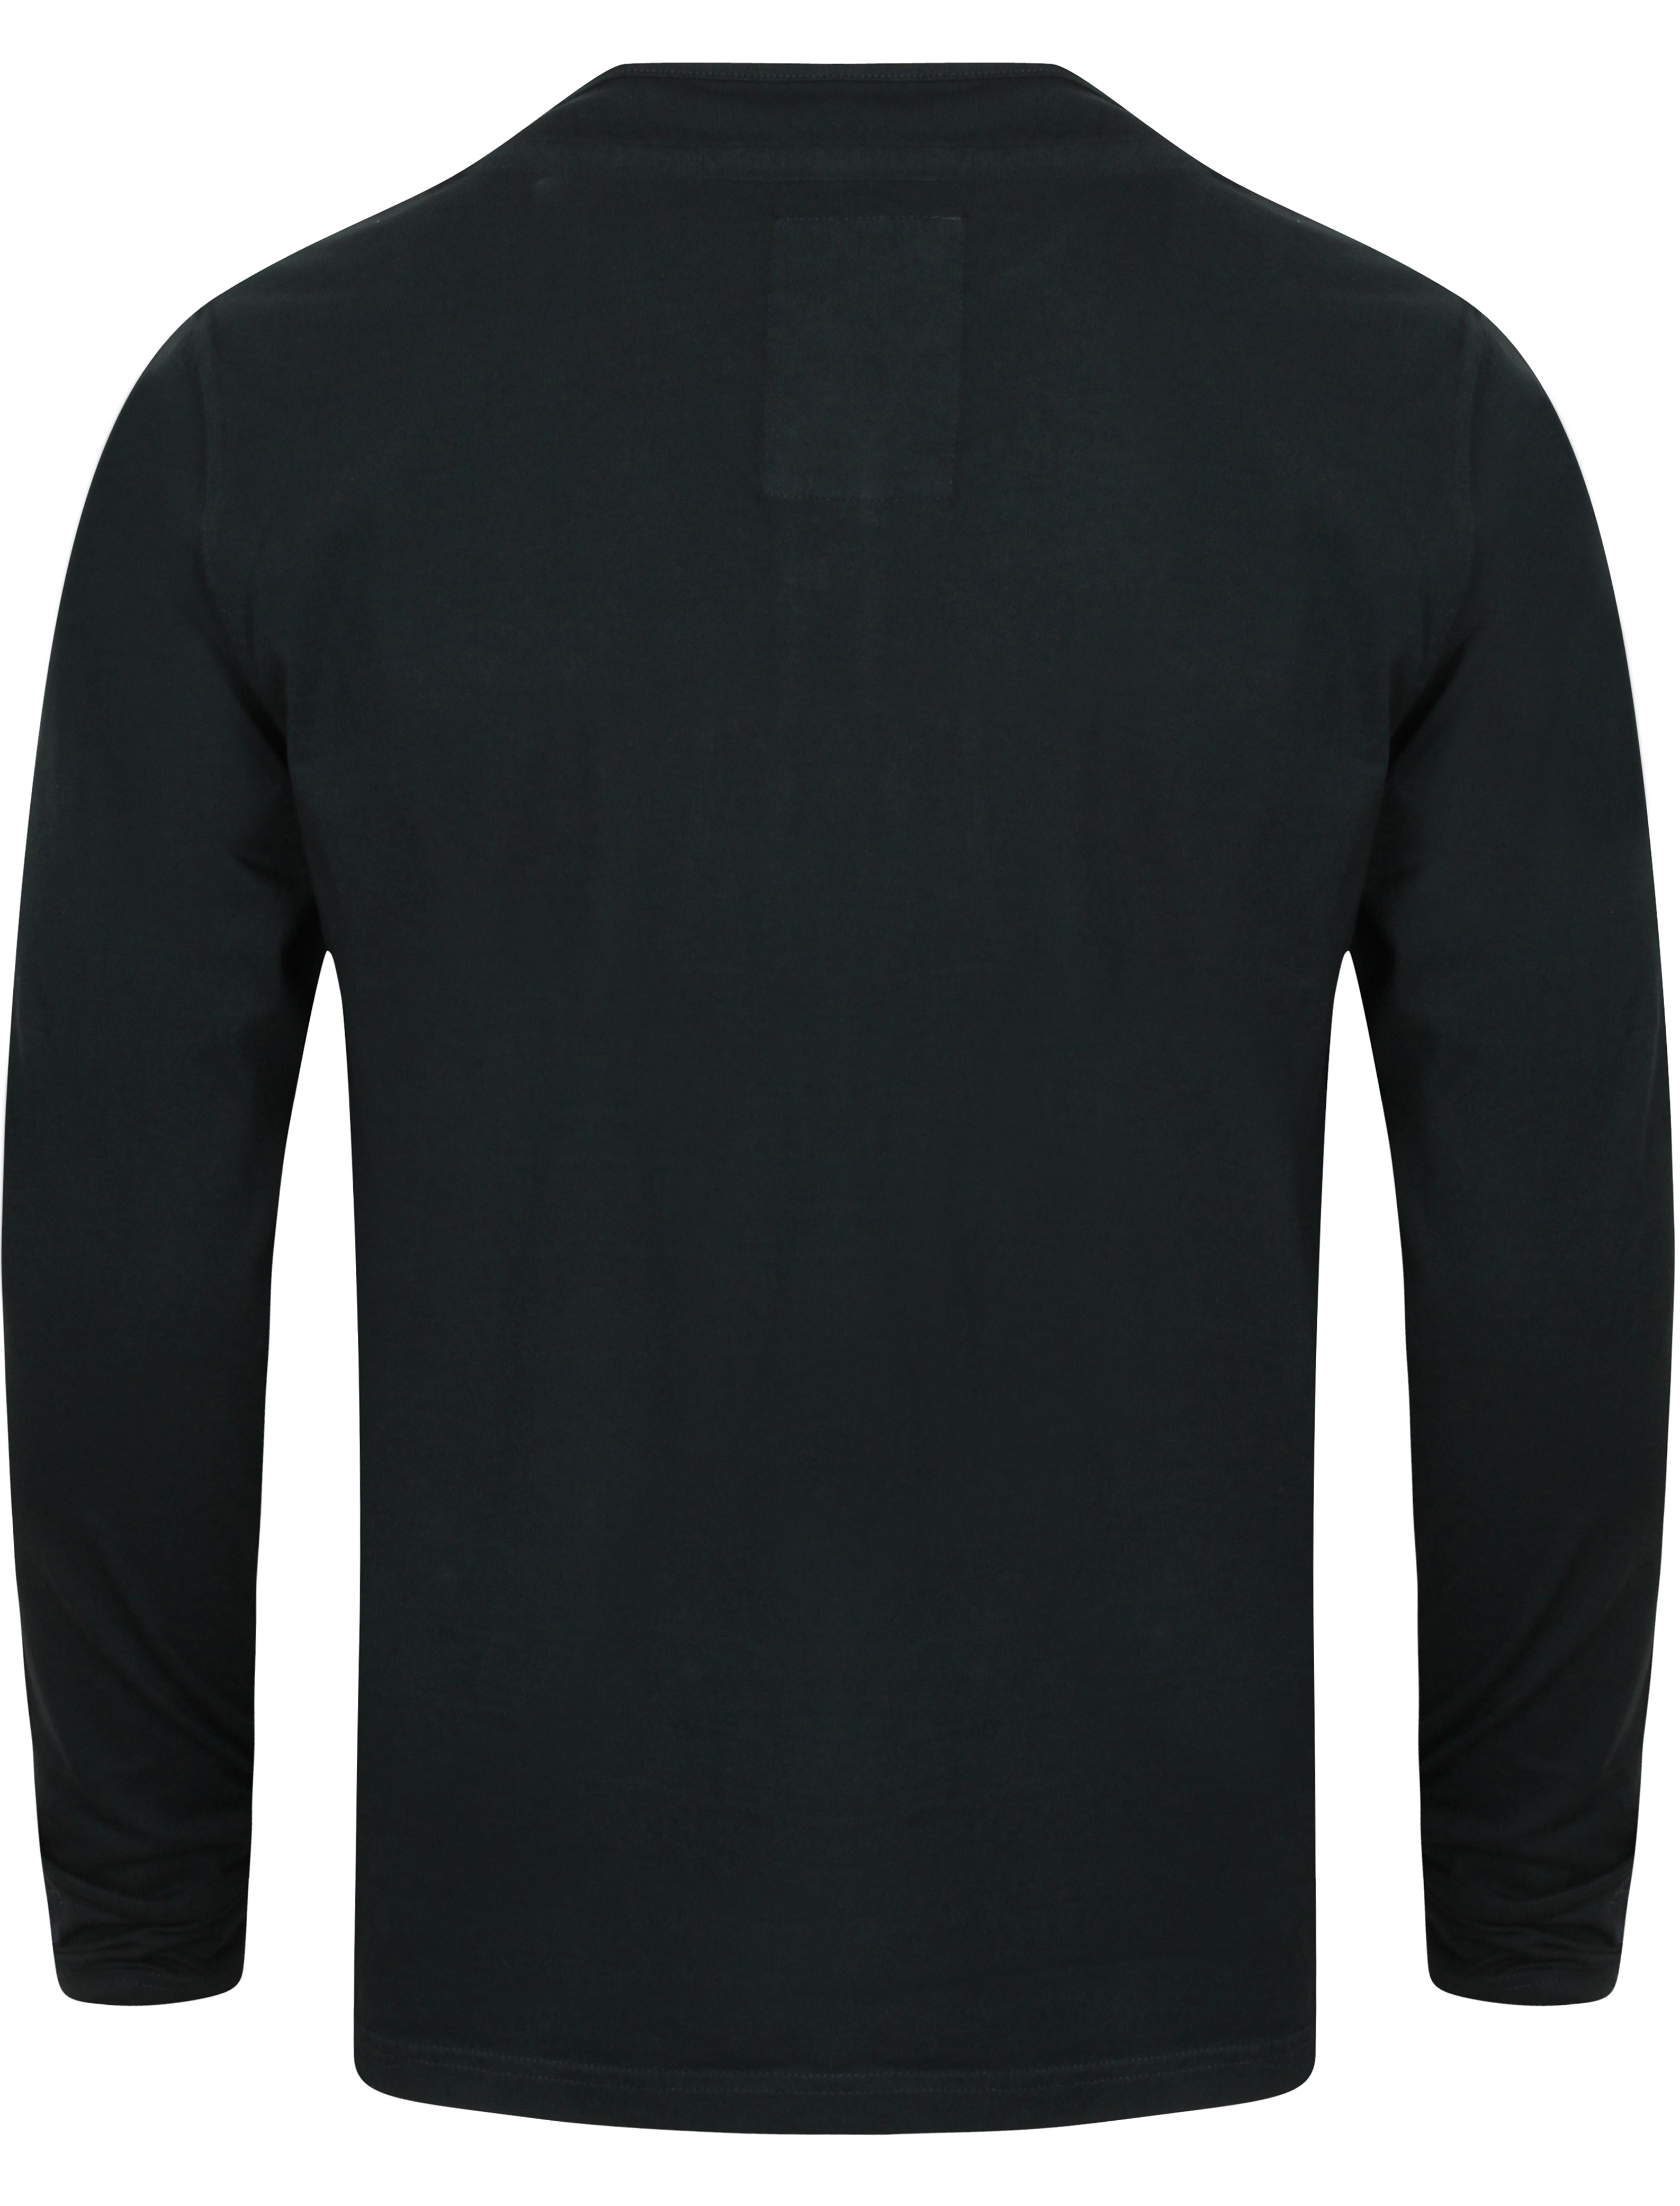 New-Mens-Tokyo-Laundry-Winter-Pines-Crew-Neck-Cotton-Long-Sleeve-Top-Size-S-XL thumbnail 3